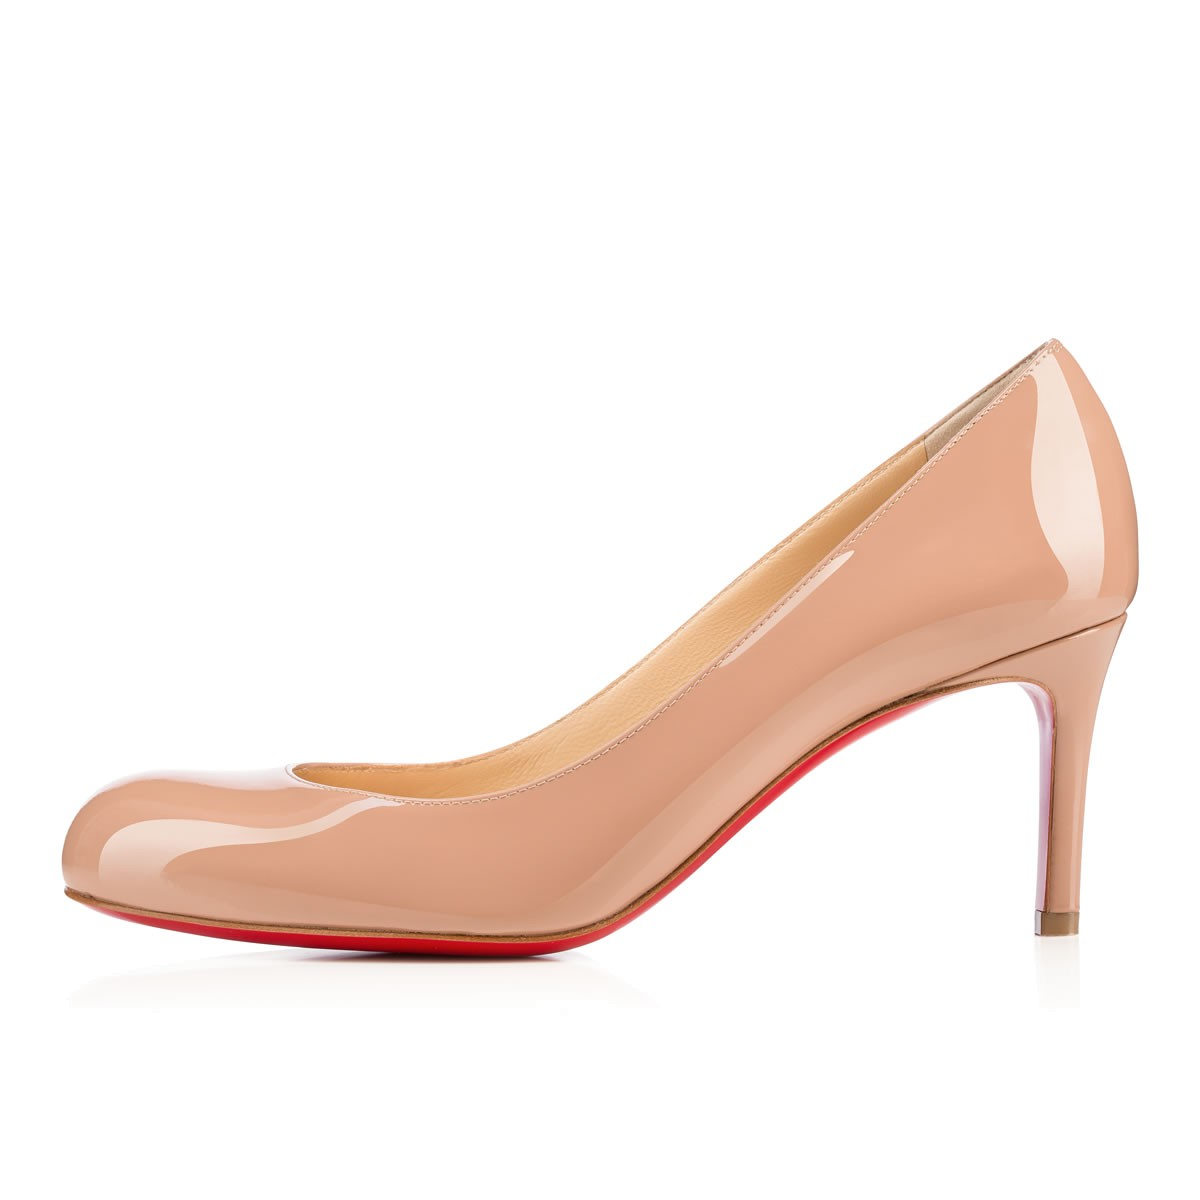 SIMPLE PUMP 70 NUDE Patent Leather - Women Shoes - Christian Louboutin 1f0cbd42ee